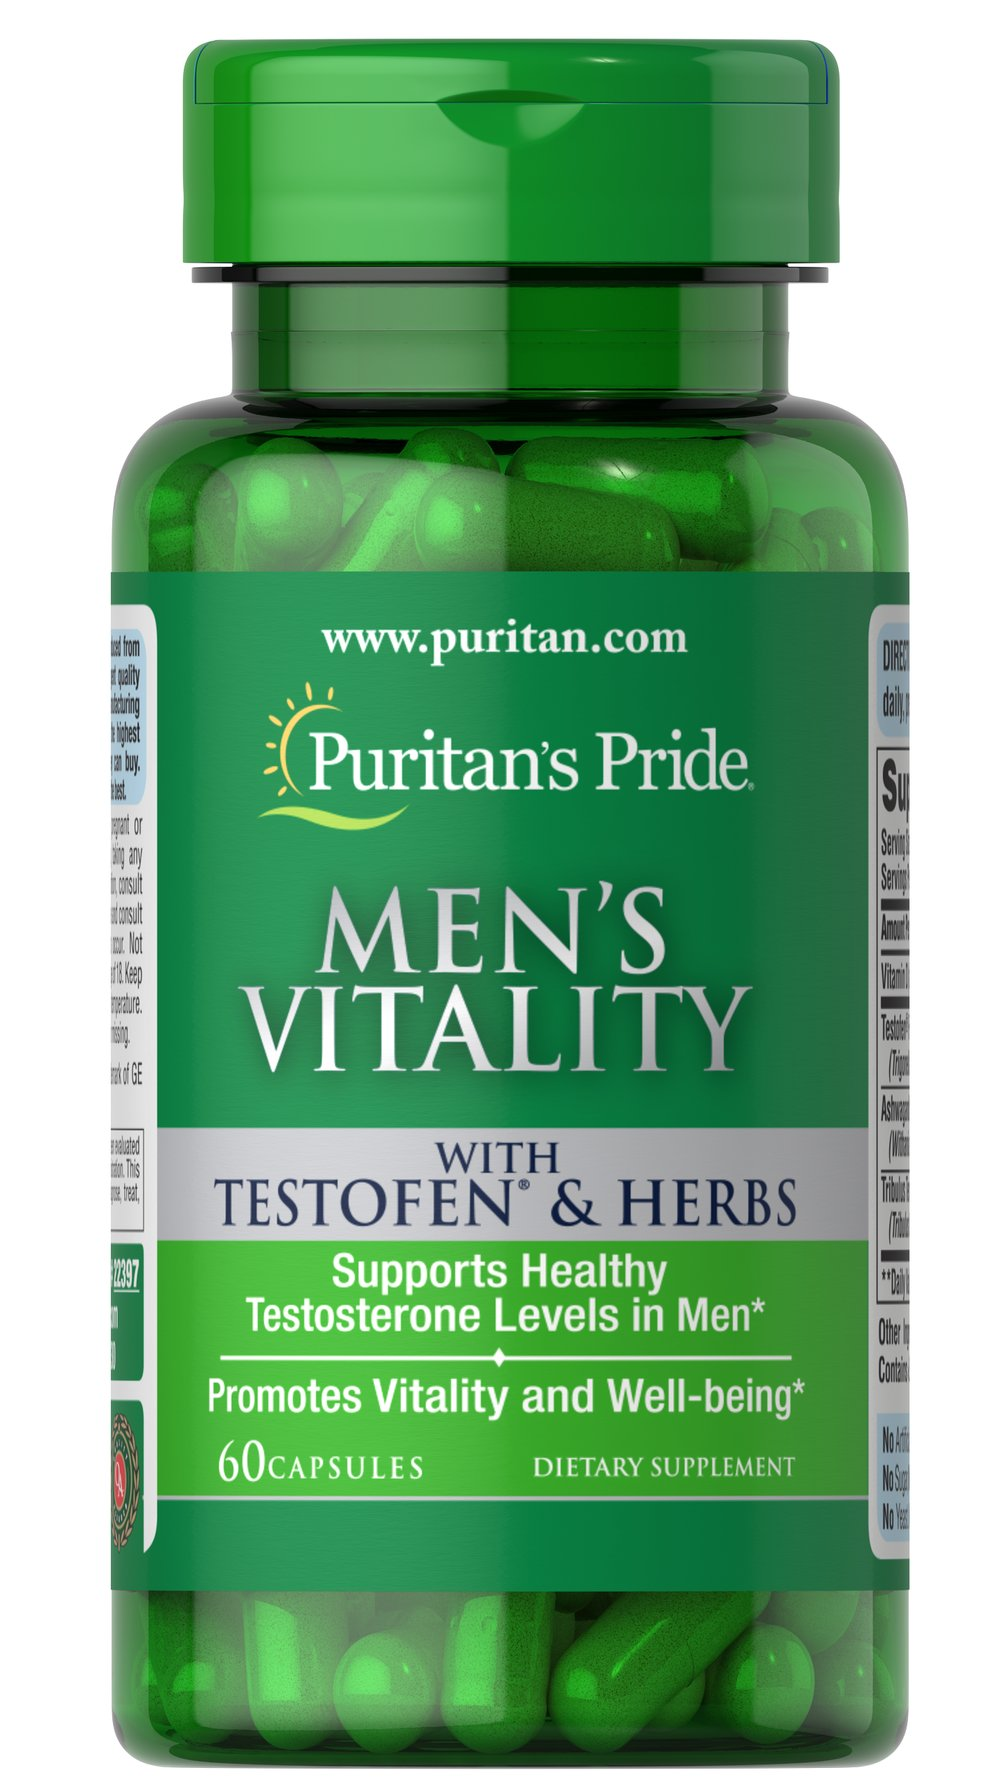 Men's Vitality with Testofen® Thumbnail Alternate Bottle View